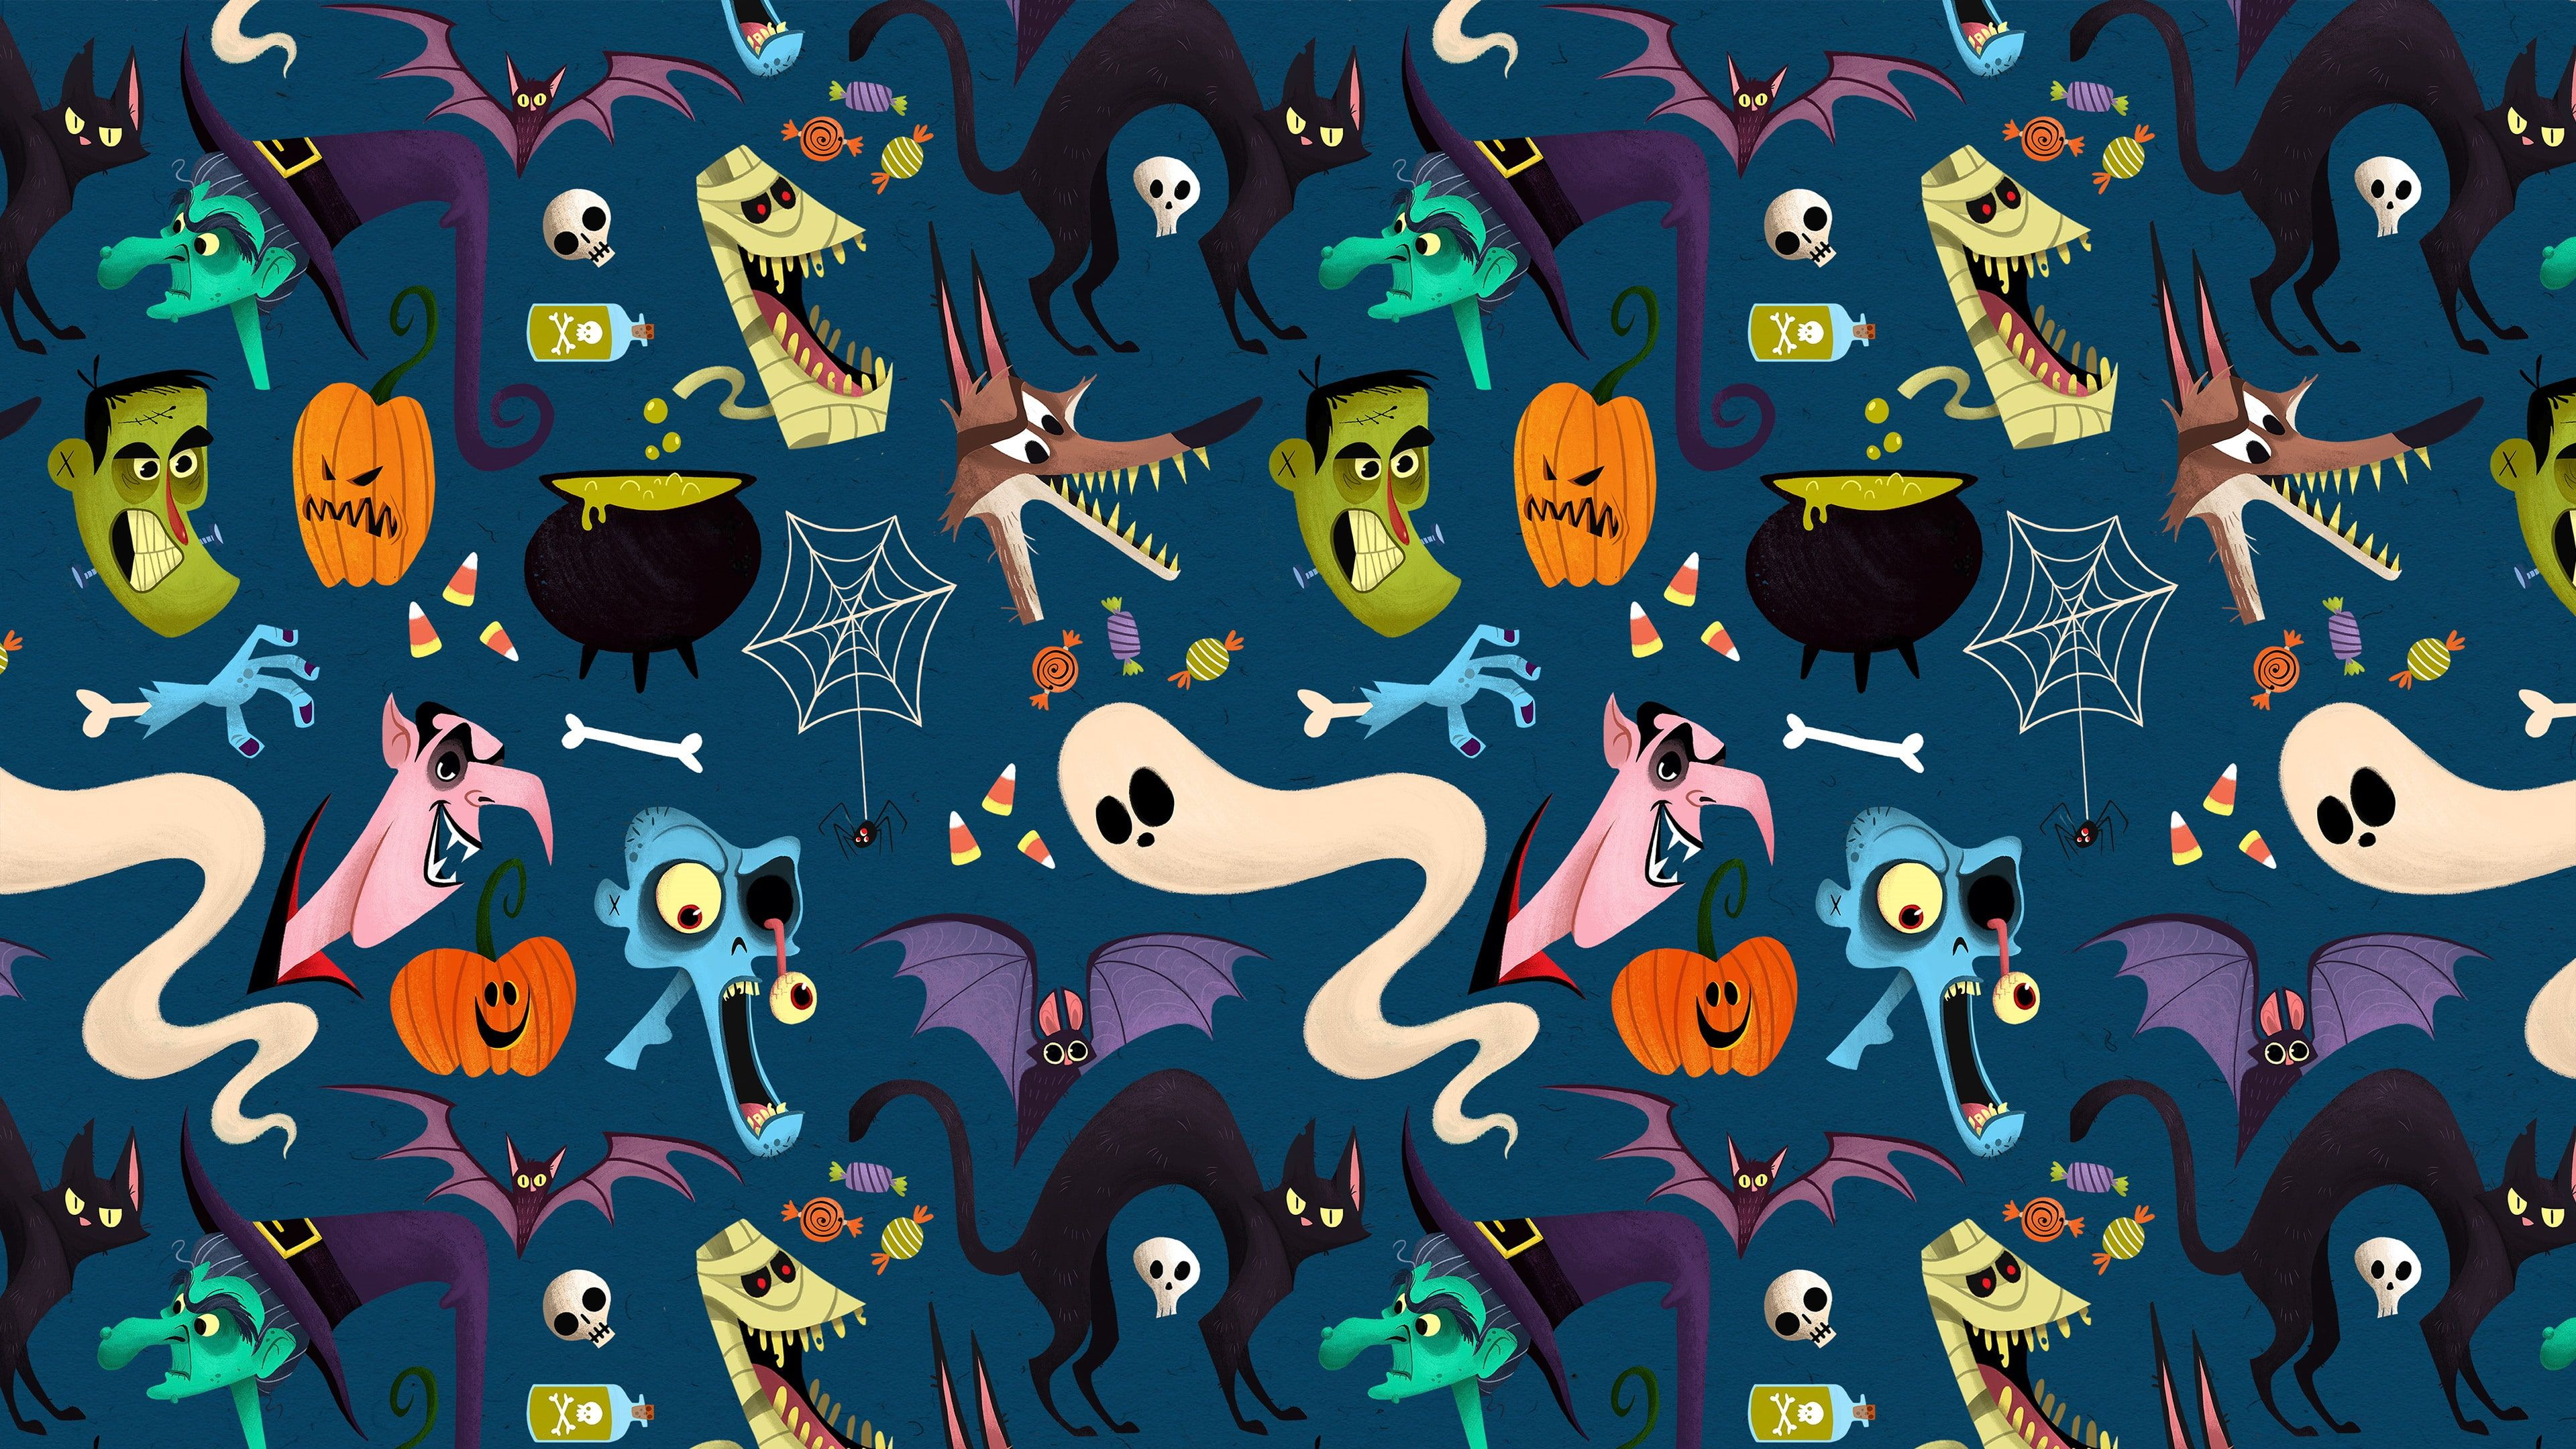 HD wallpaper: pattern, halloween, funny, ghost, graphics